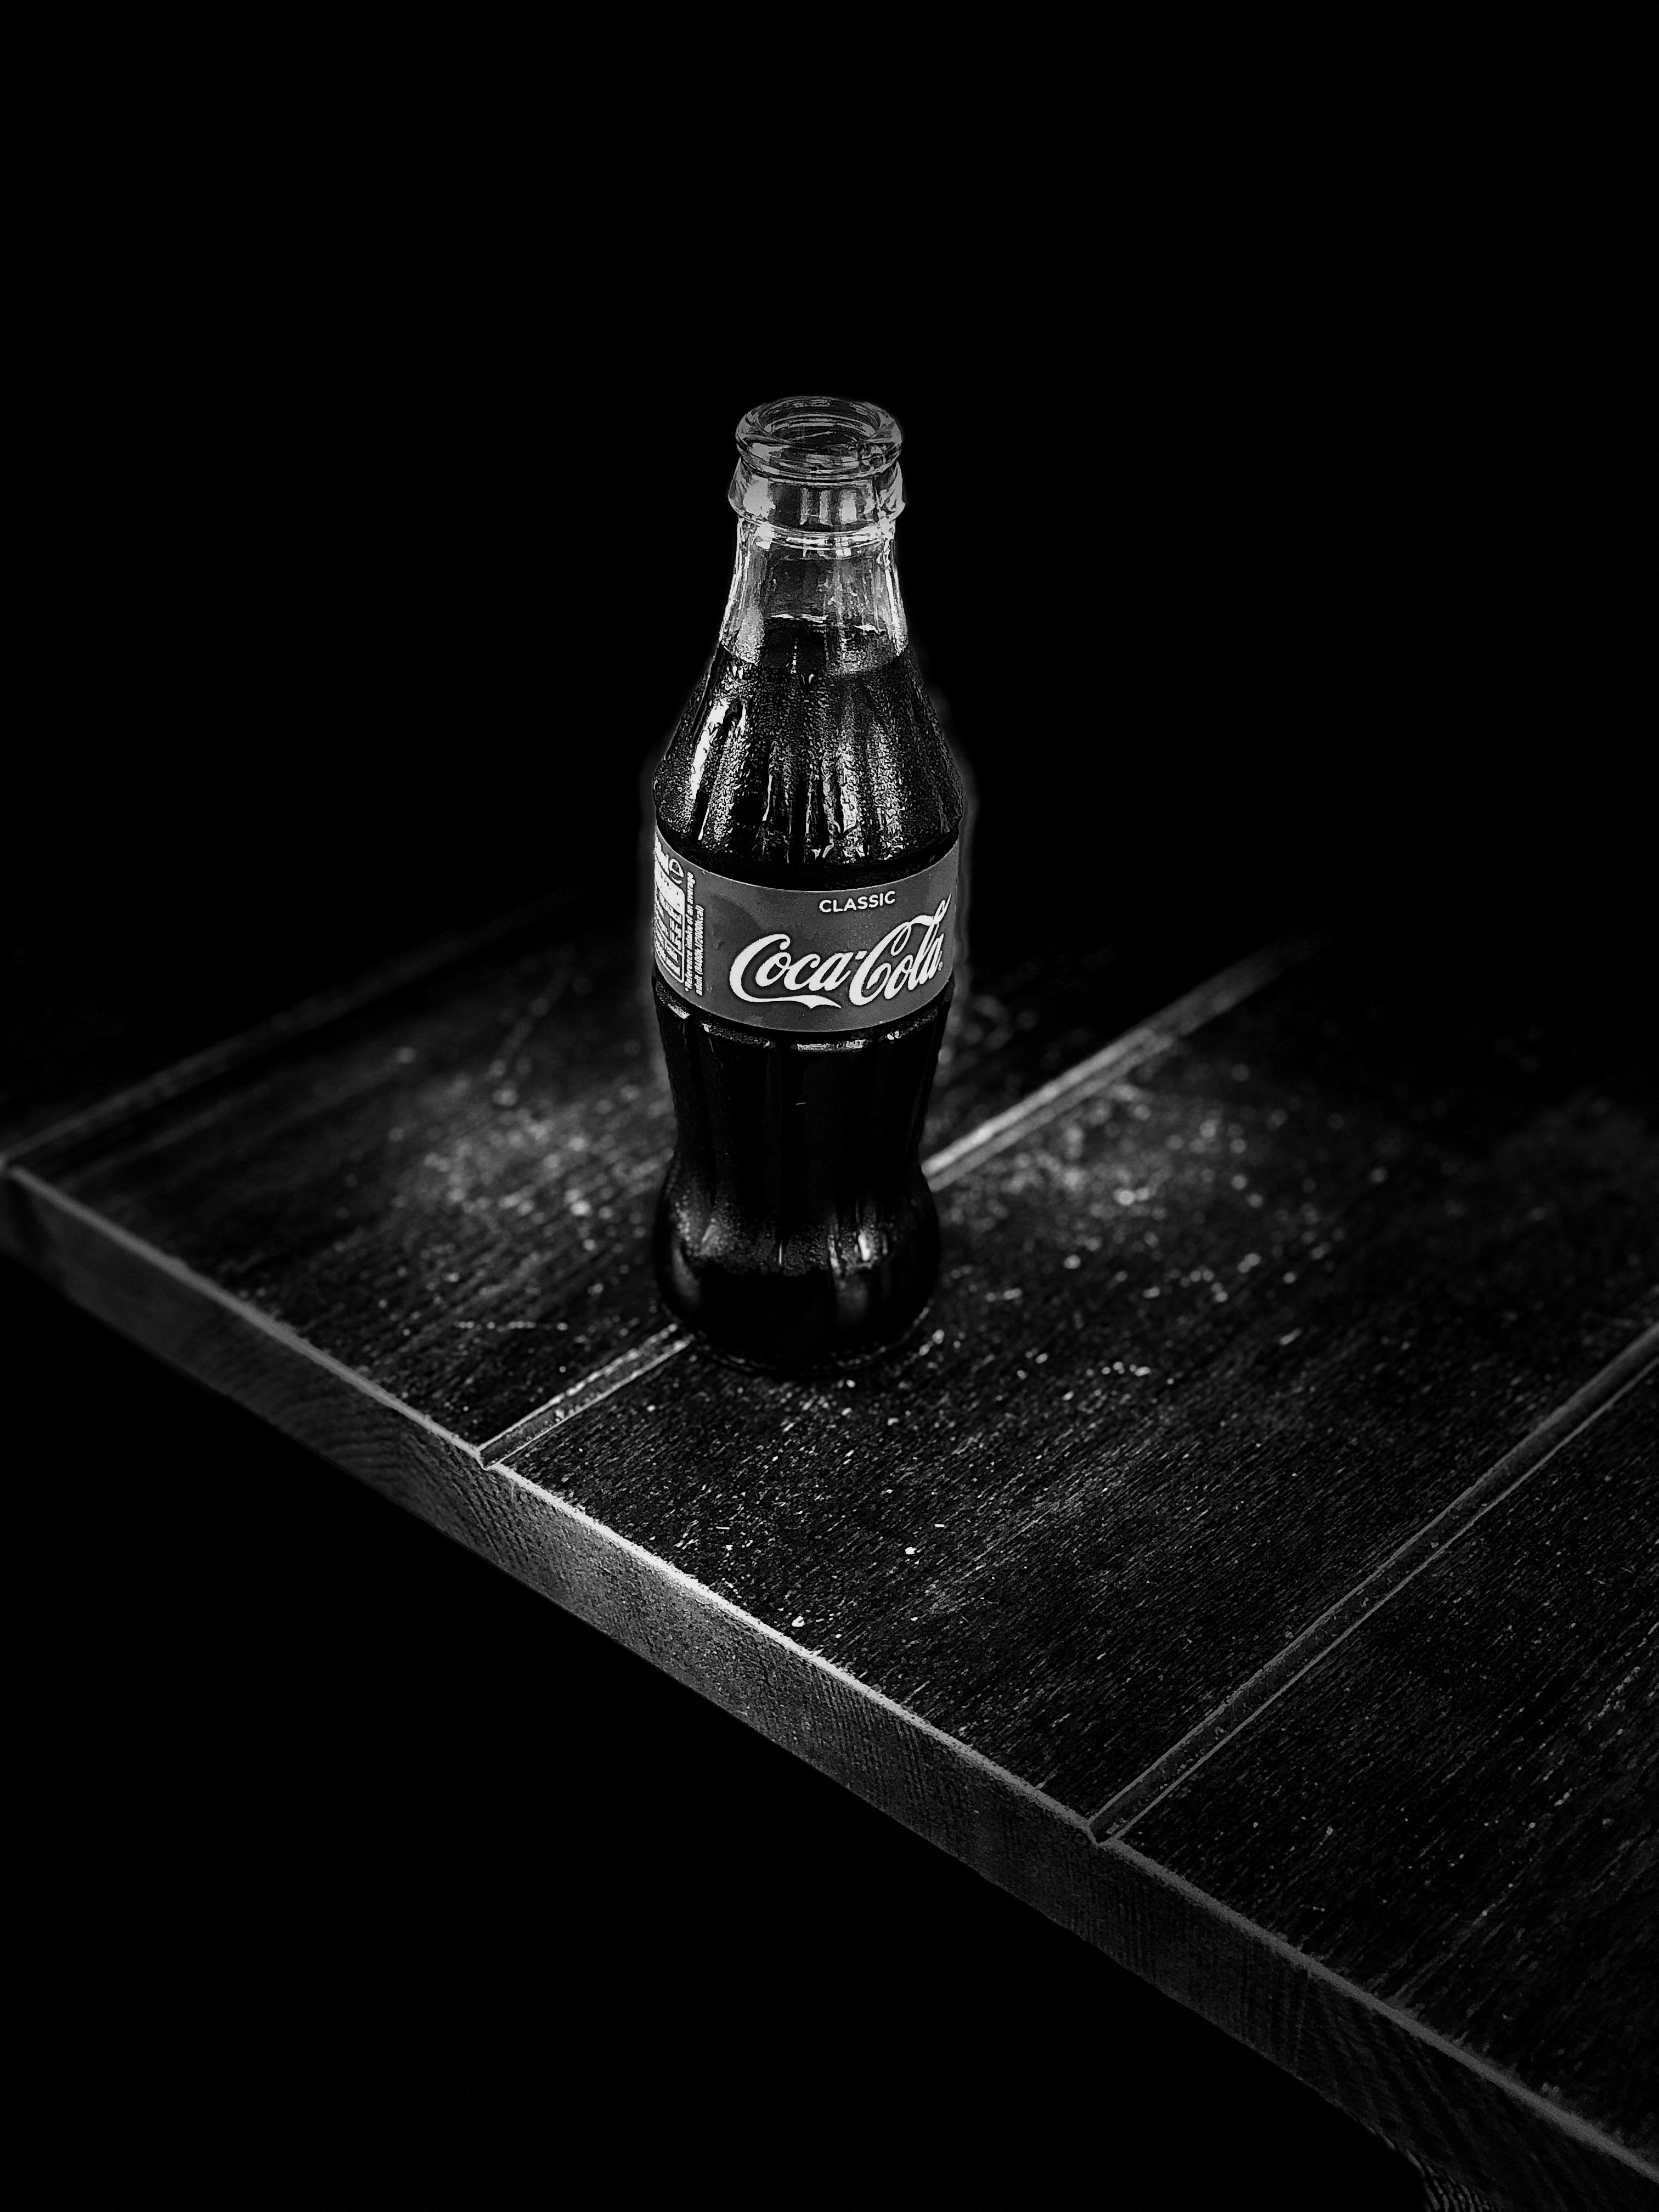 grayscale photography of Coca-Cola bottle on table